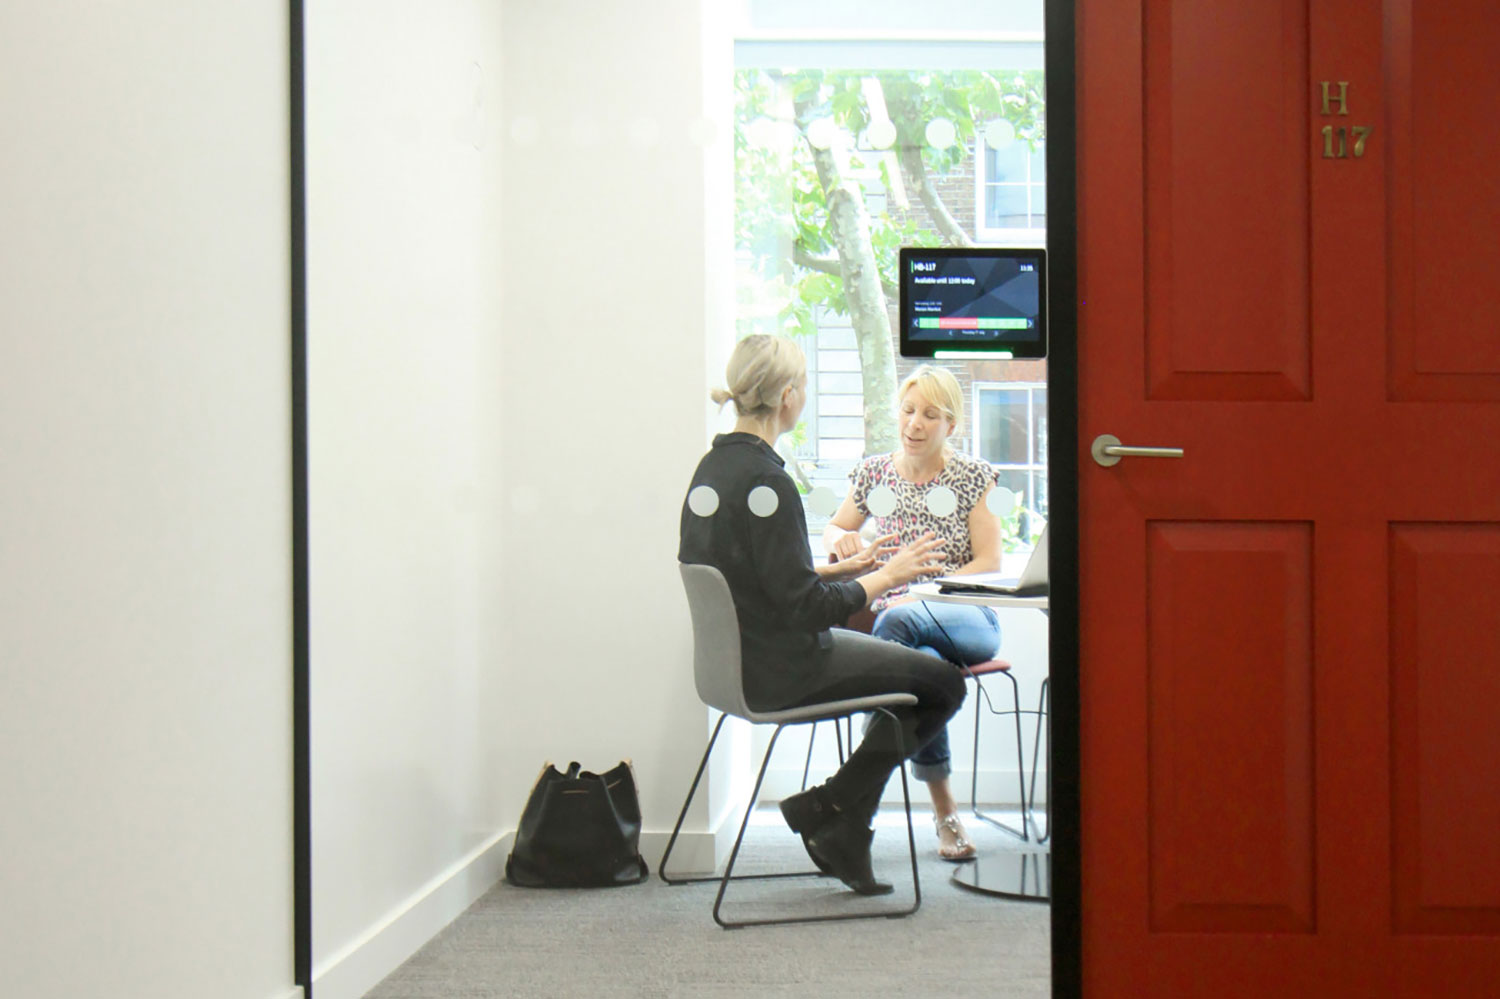 Whitbread London Meeting Room System